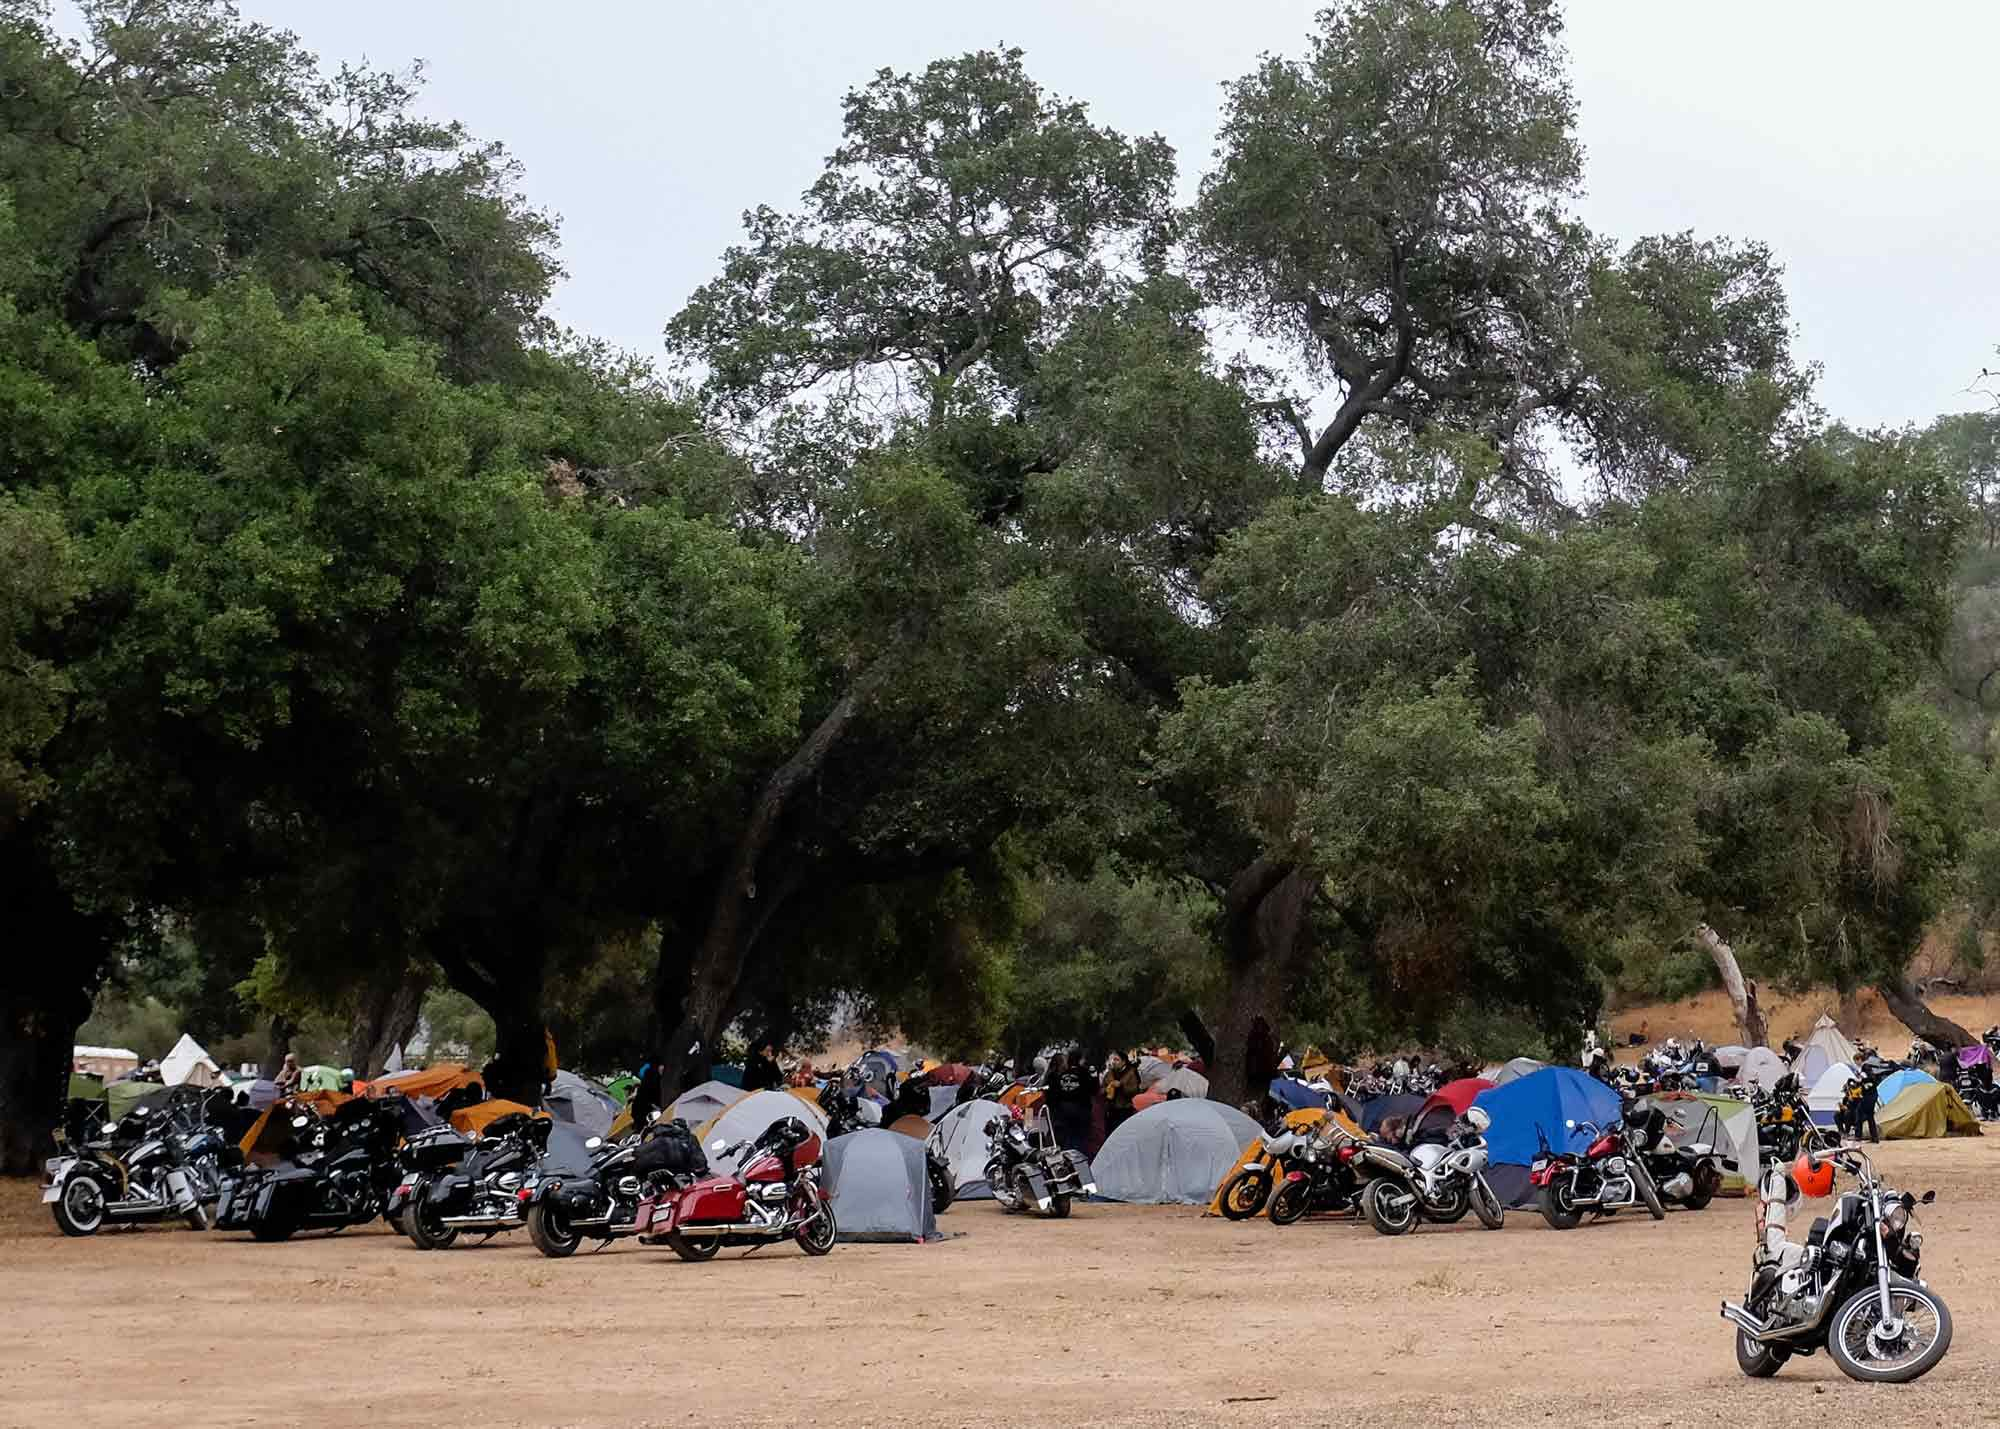 The marine layer sat thick above the Los Padres mountains in the early morning as campers began readying their machines for the day ahead.